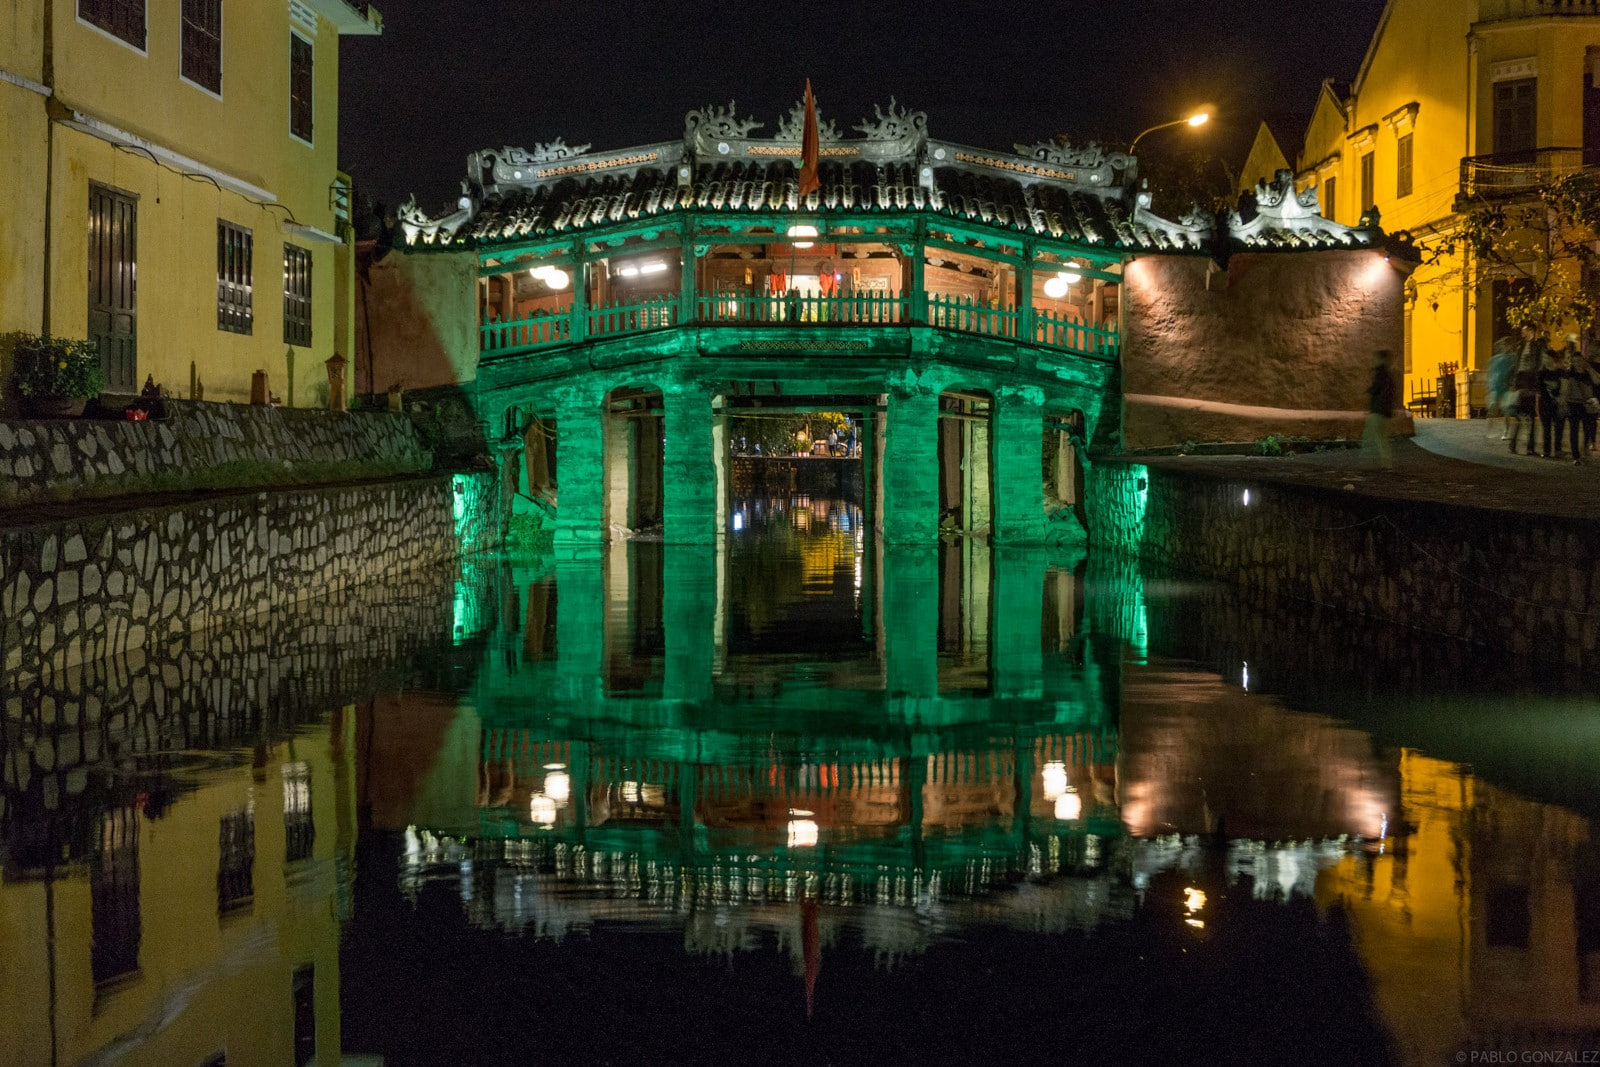 Image of the Japanese Covered Bridge in Hoi An, Vietnam illuminated green at night